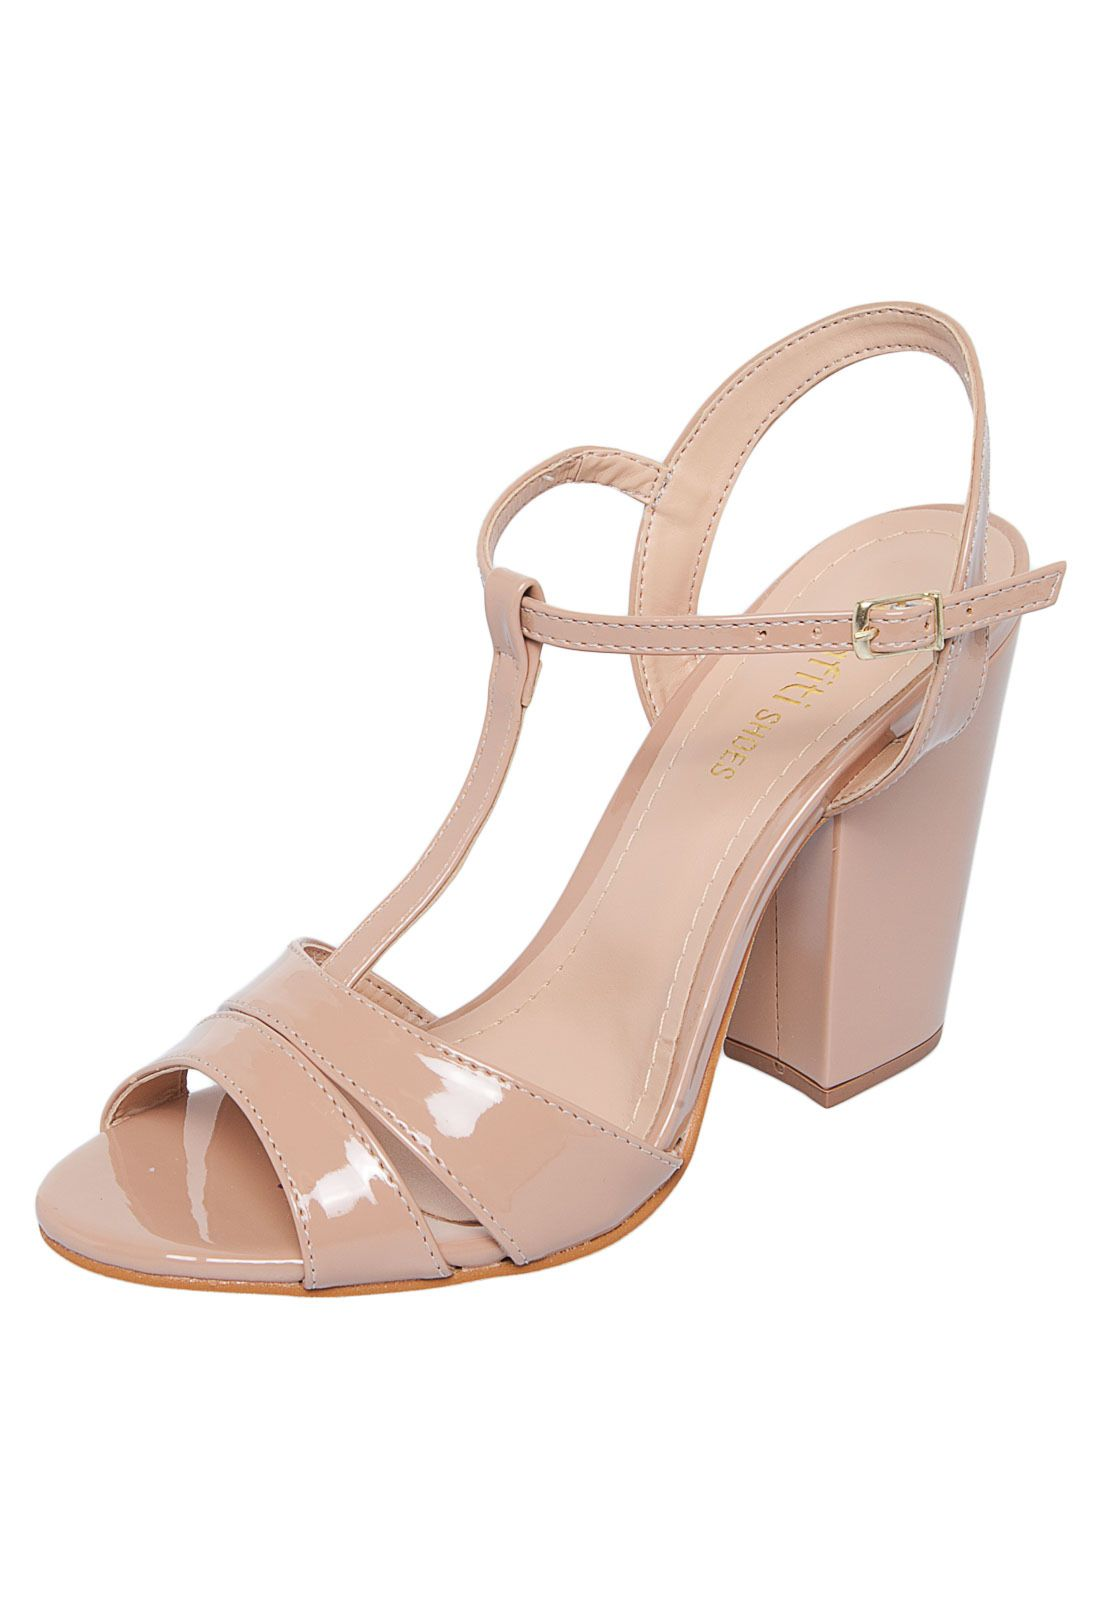 6bef432473d Sandália DAFITI SHOES Verniz Nude - Marca DAFITI SHOES